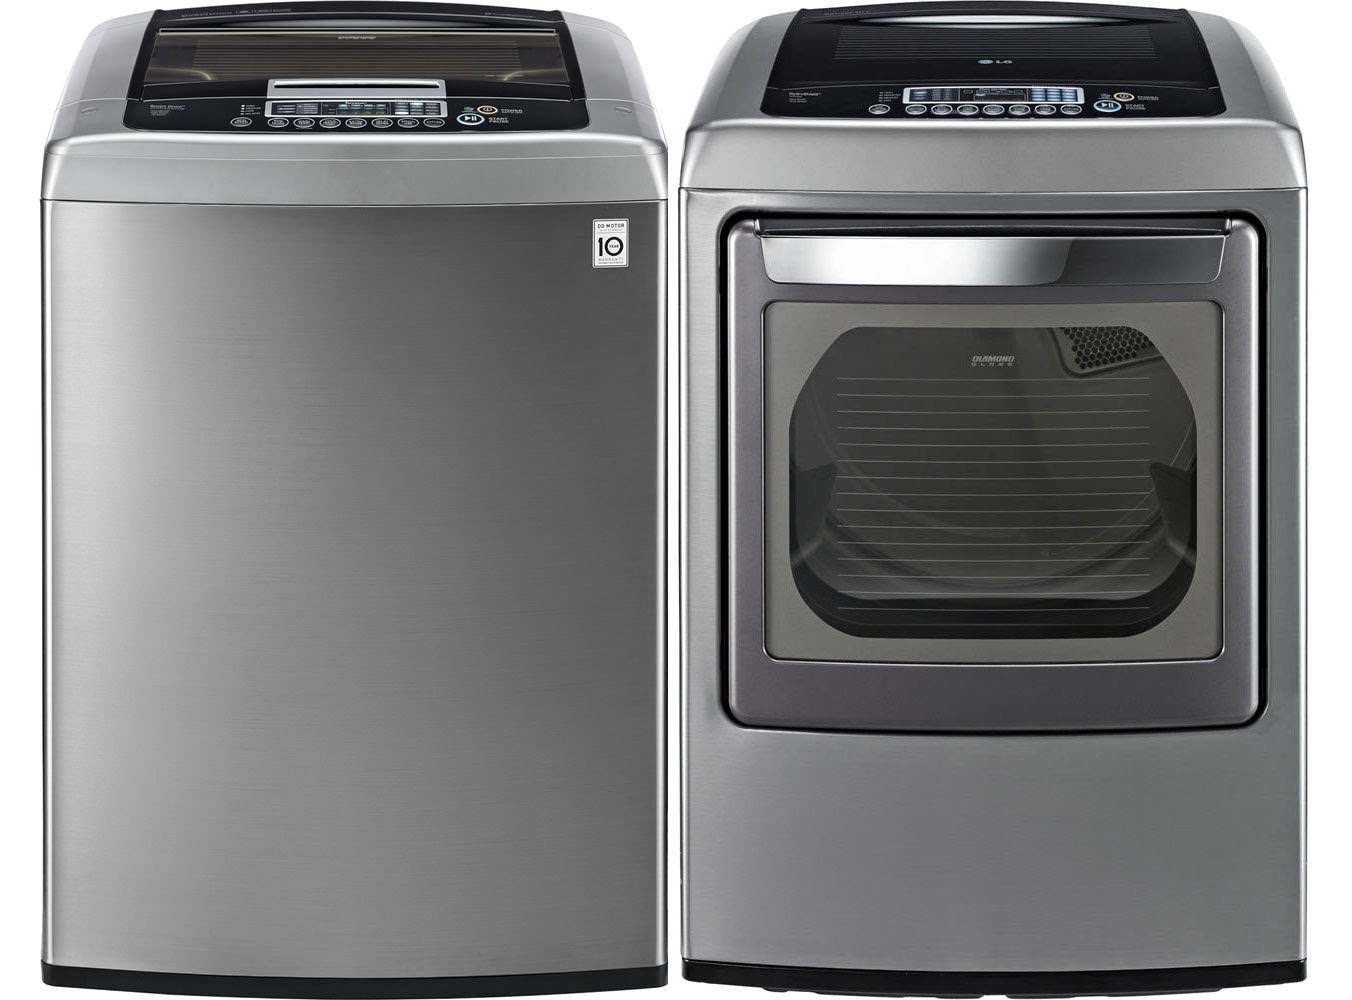 Lg Washer And Dryer Reviews  Lg Graphite Washer And Dryer